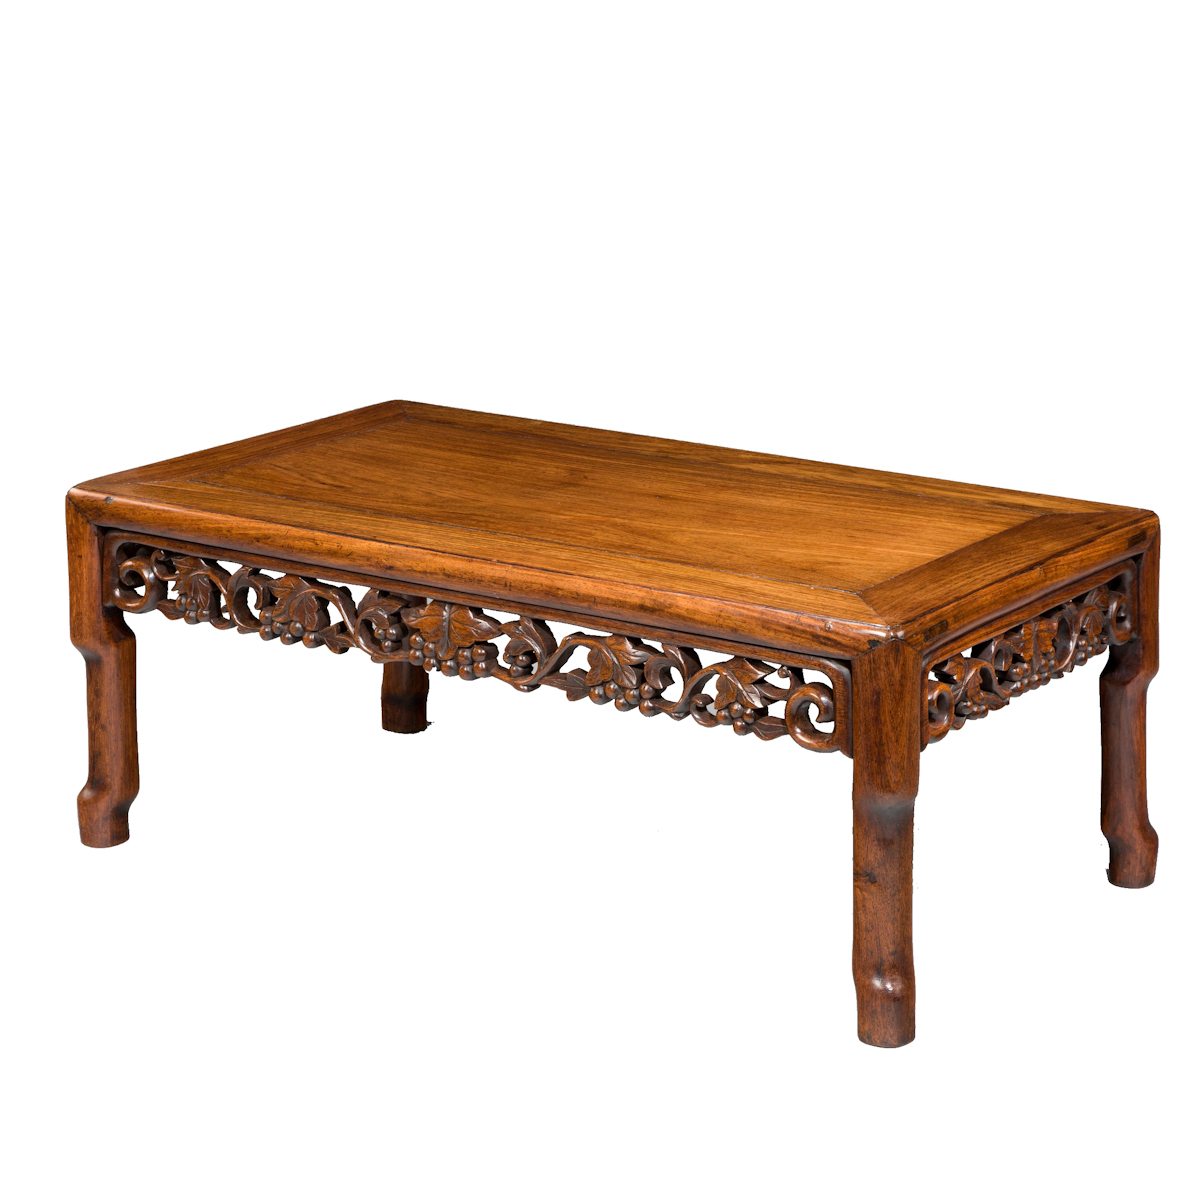 Antique small chinese opium table richard gardner antiques for Antique chinese tables for sale